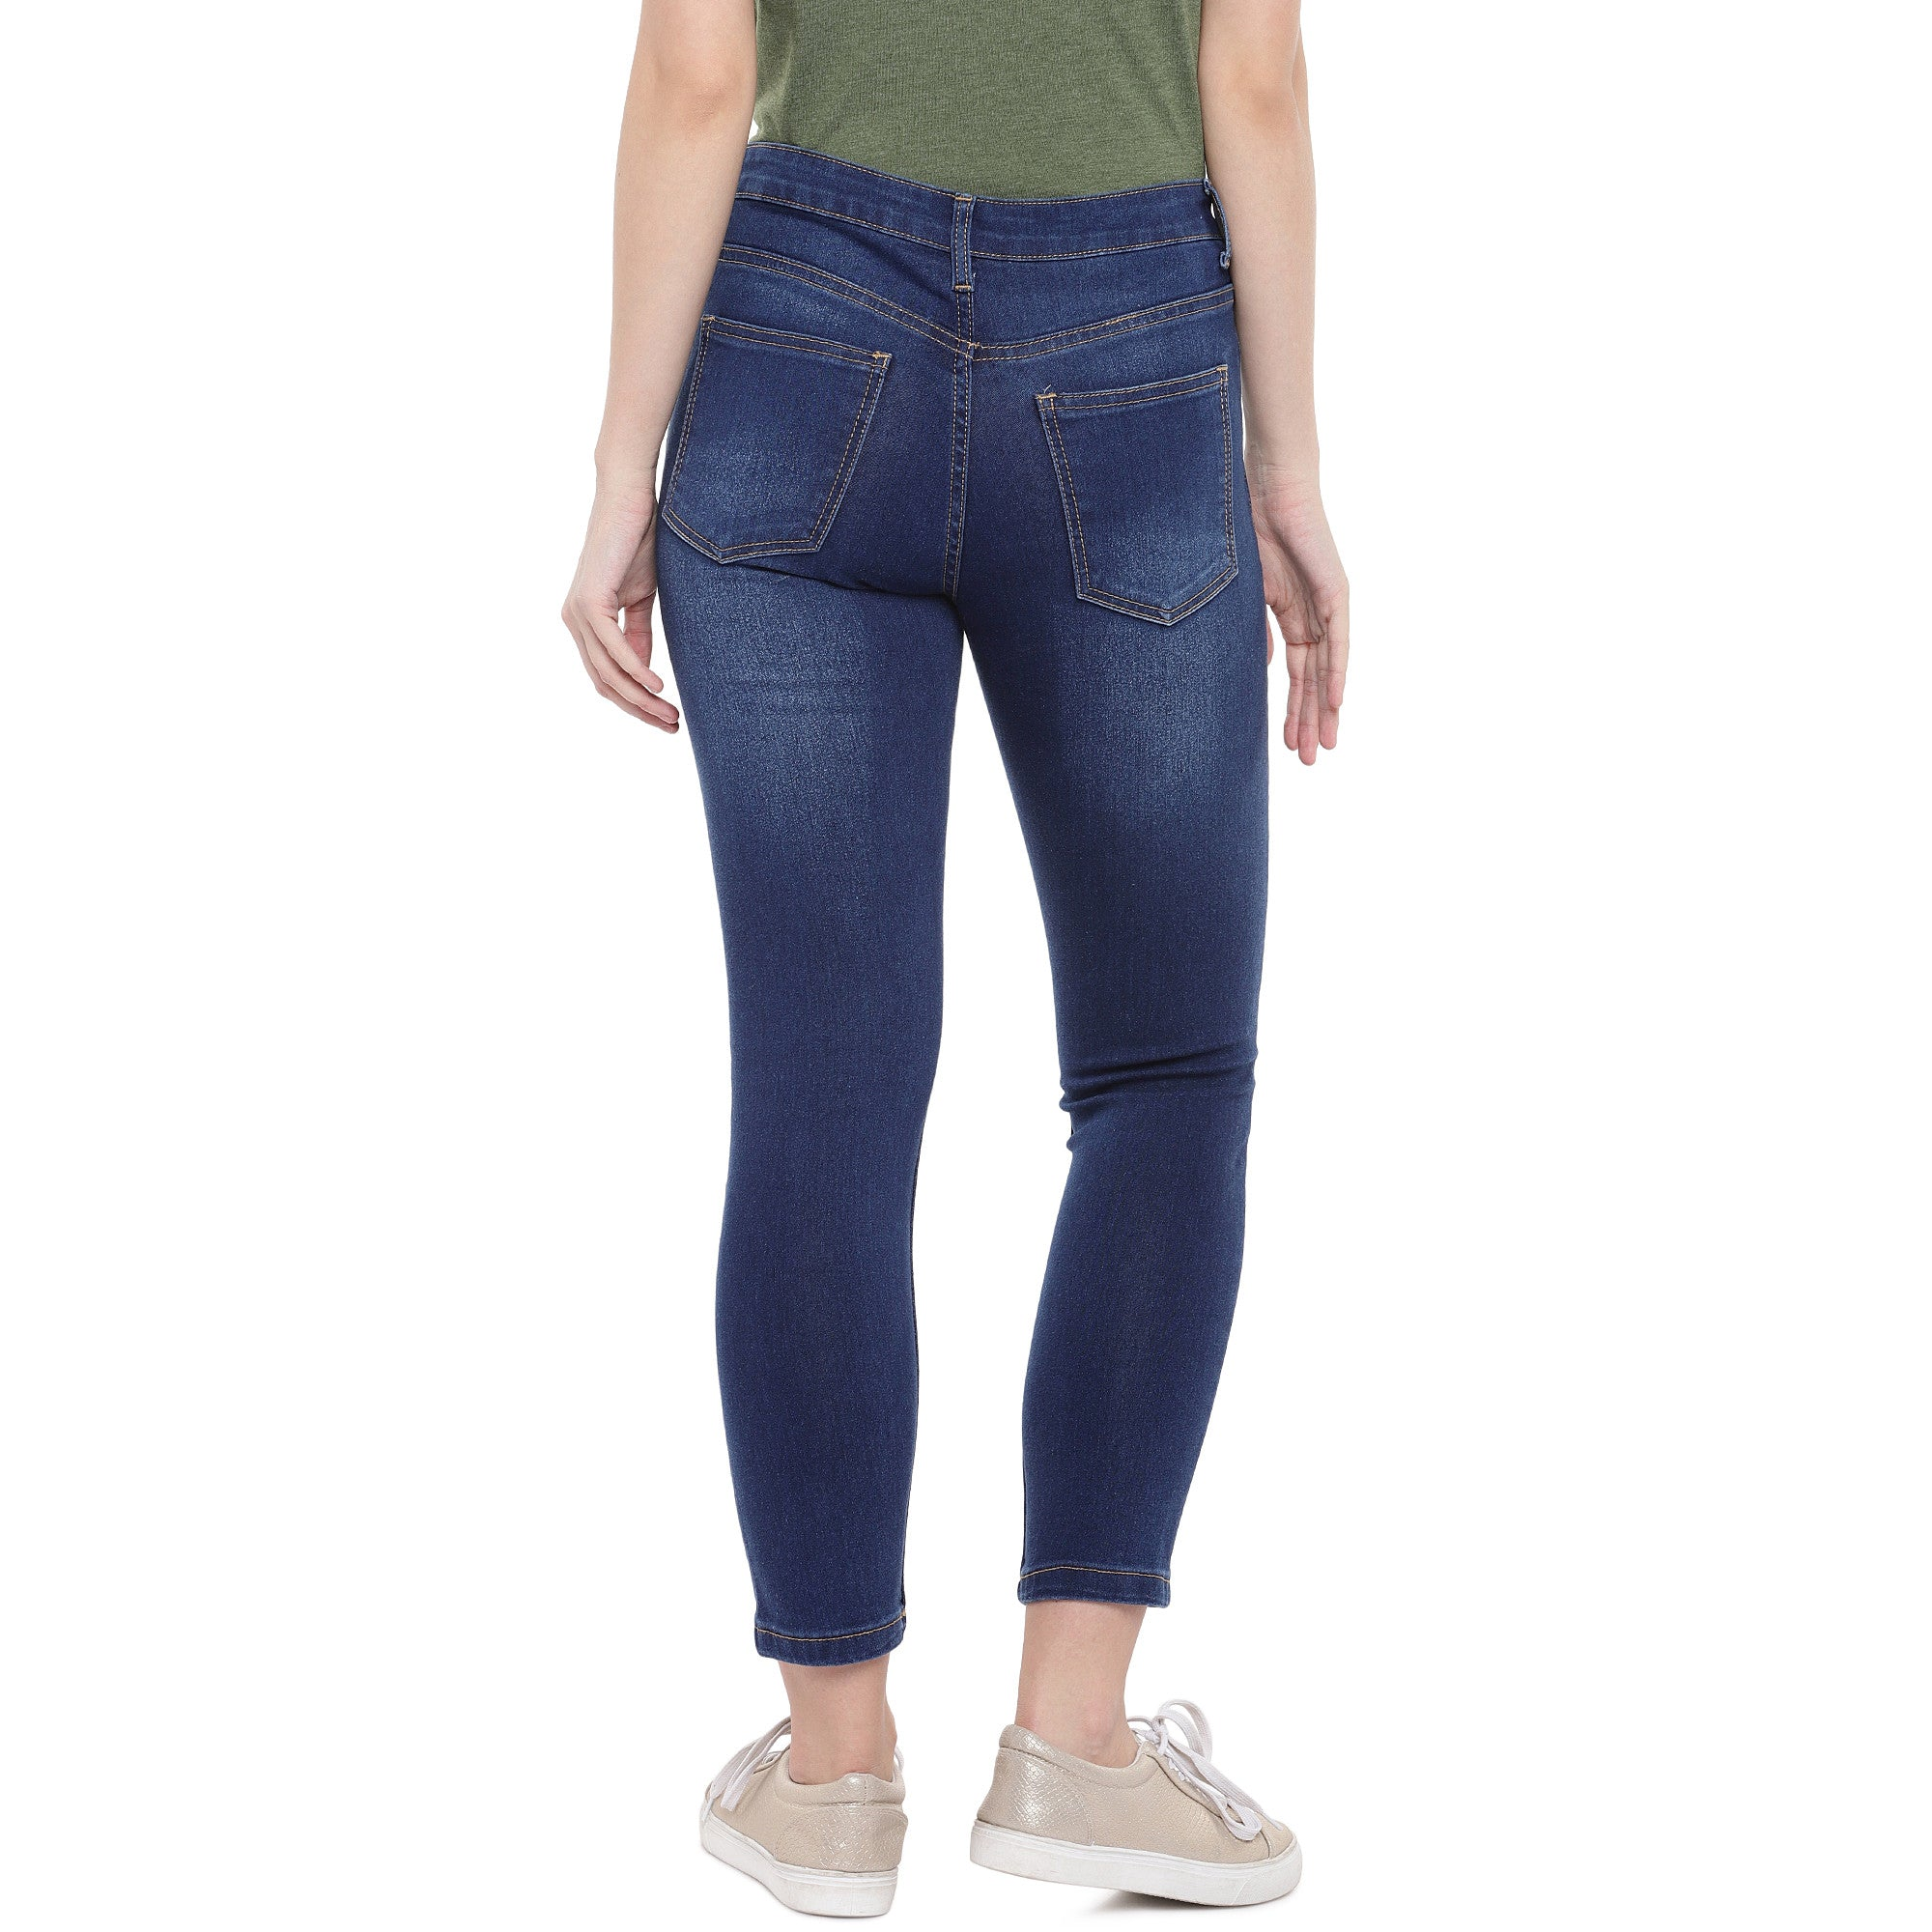 Blue Skinny Fit Mid-Rise Clean Look Jeans-3